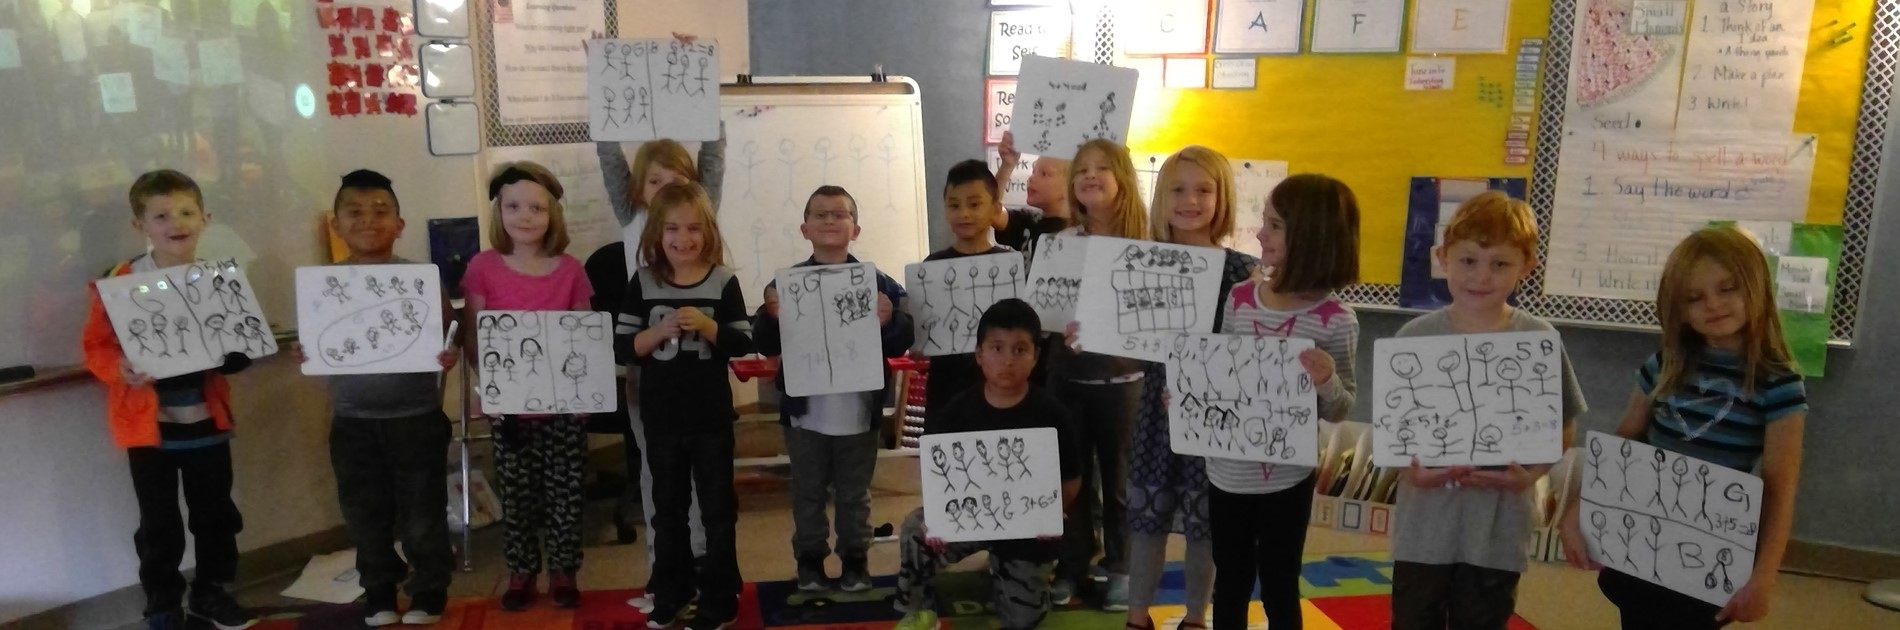 classroom of students holding drawings of stick figures